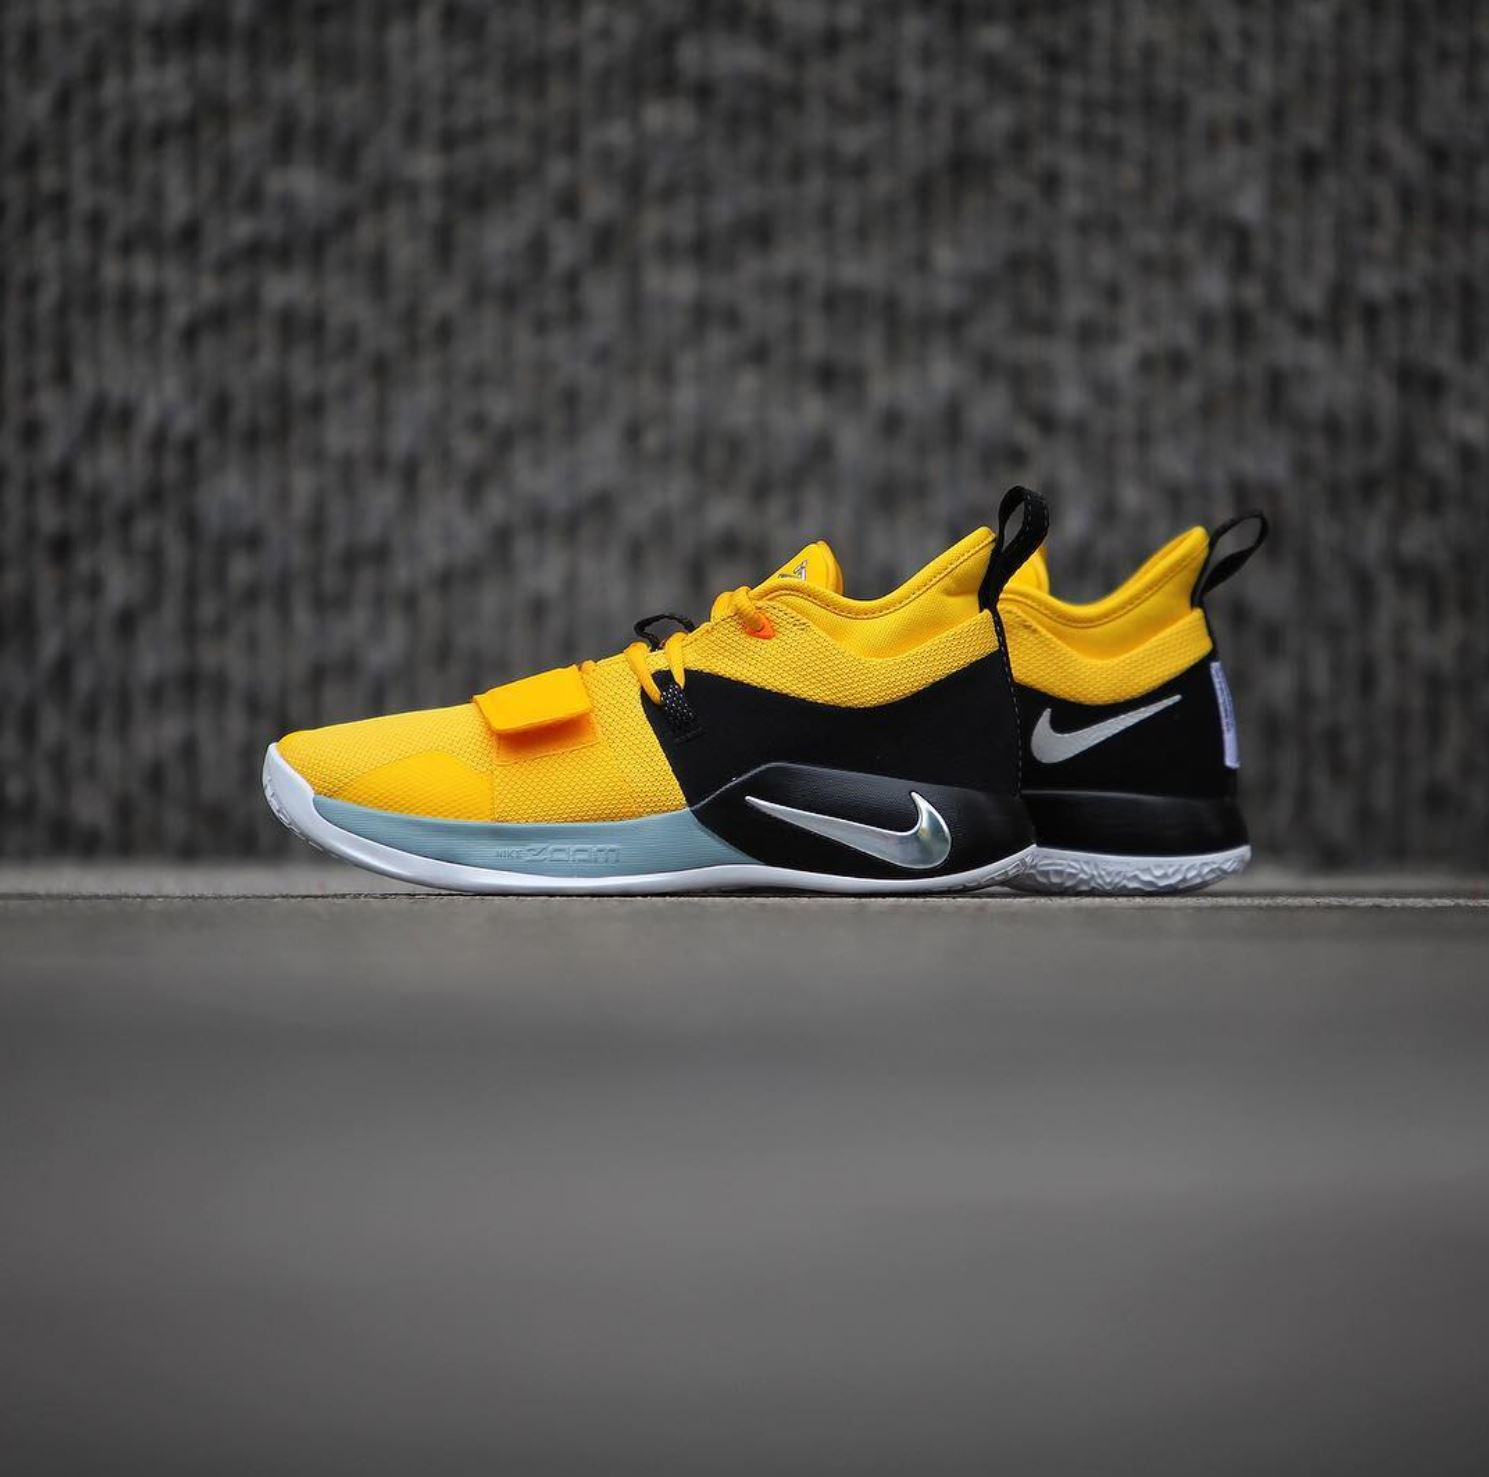 save off cc3e7 a91b6 The Nike PG 2.5 'Moon Exploration' May Celebrate the Second ...